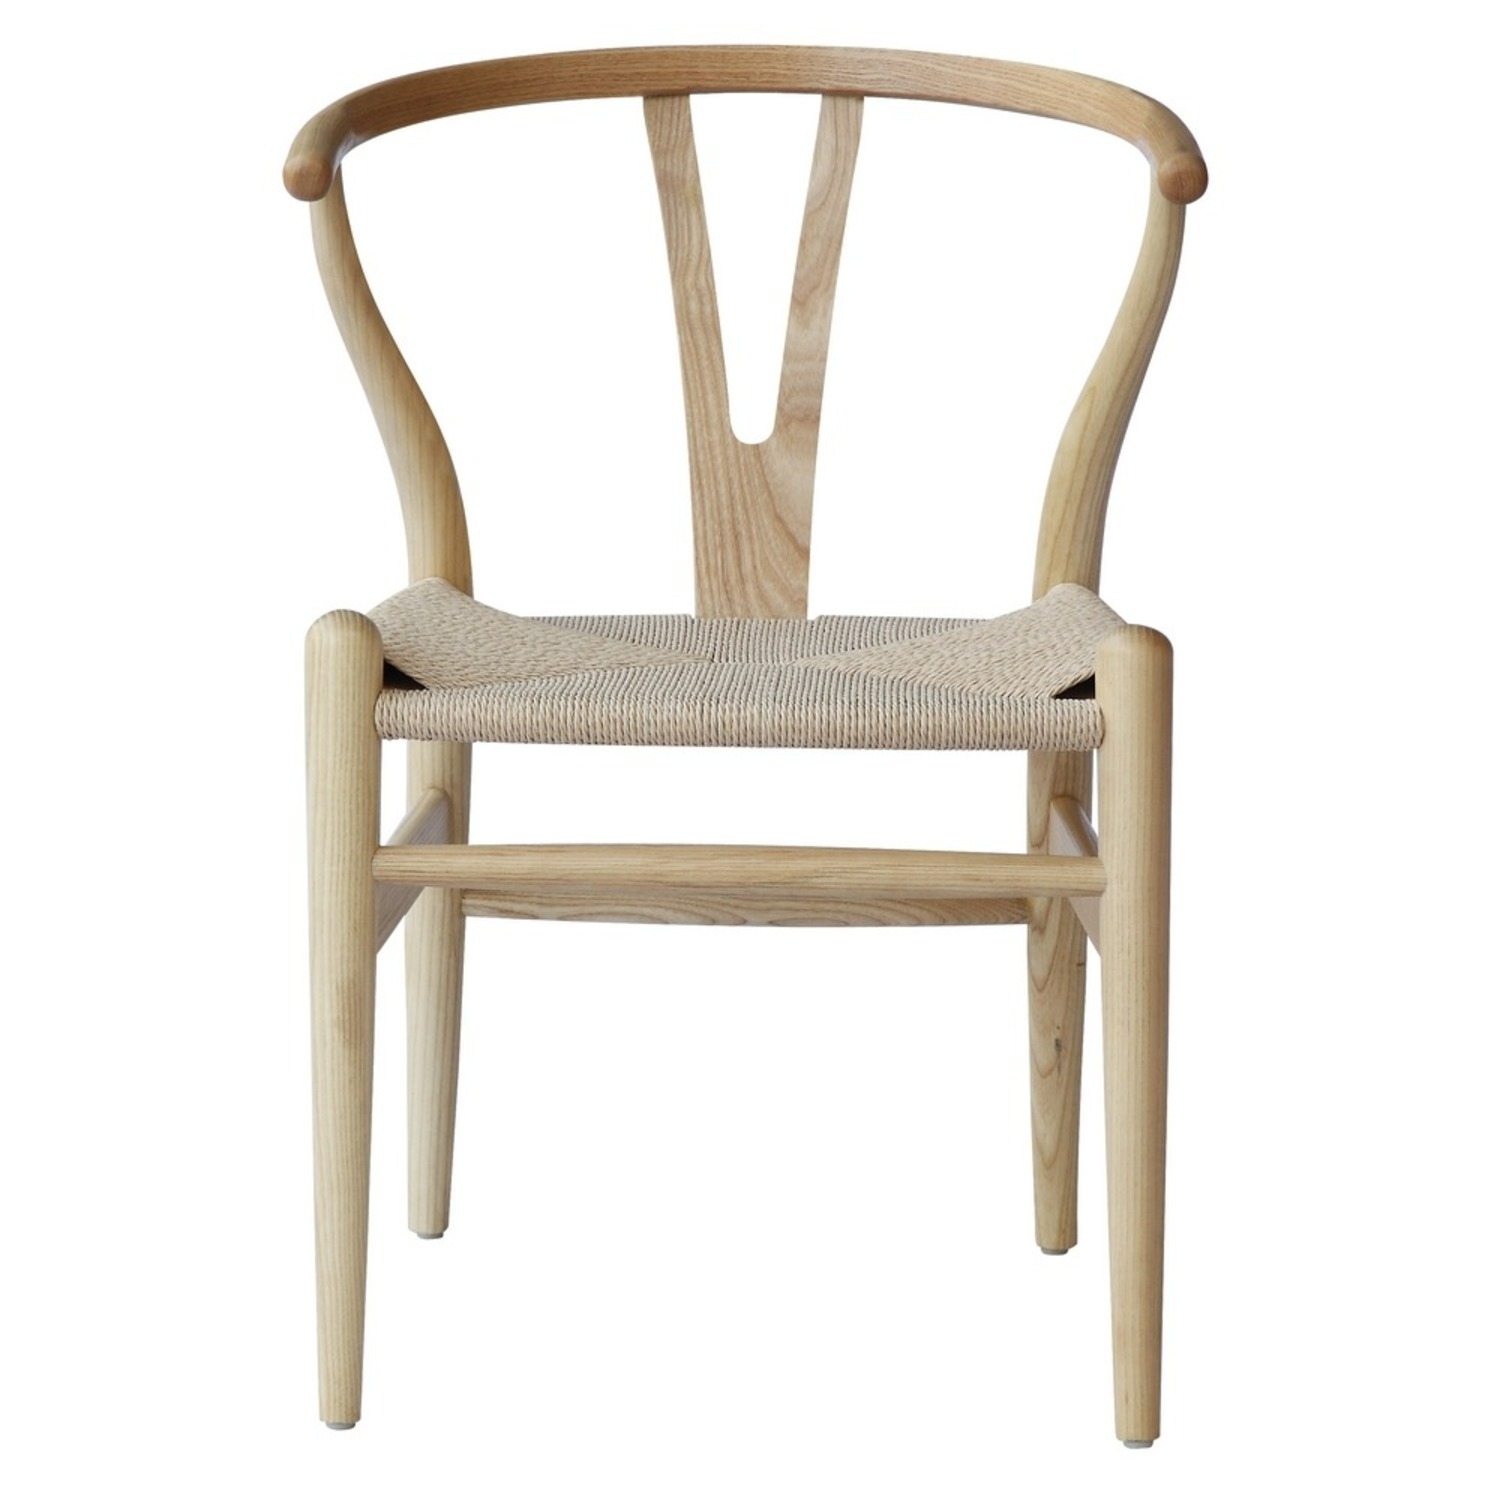 Dining Chair In Natural Frame & Natural Hemp Seat - image-5